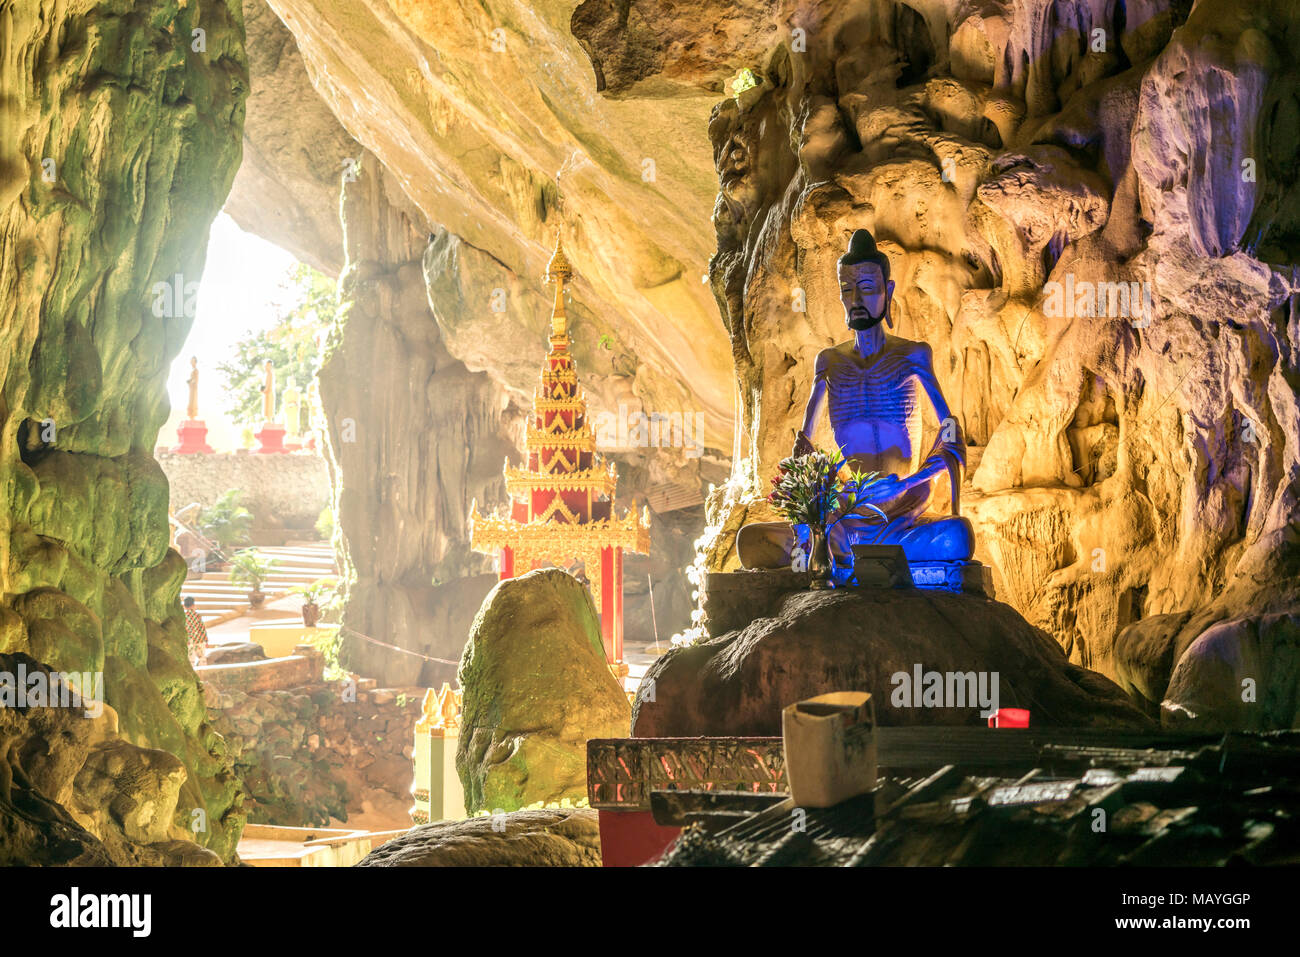 beleuchtete Statue in der Saddan-Höhle, Hpa-an, Myanmar, Asien  |  illuminated statue, Saddar Cave, Hpa-an, Myanmar, Asia - Stock Image